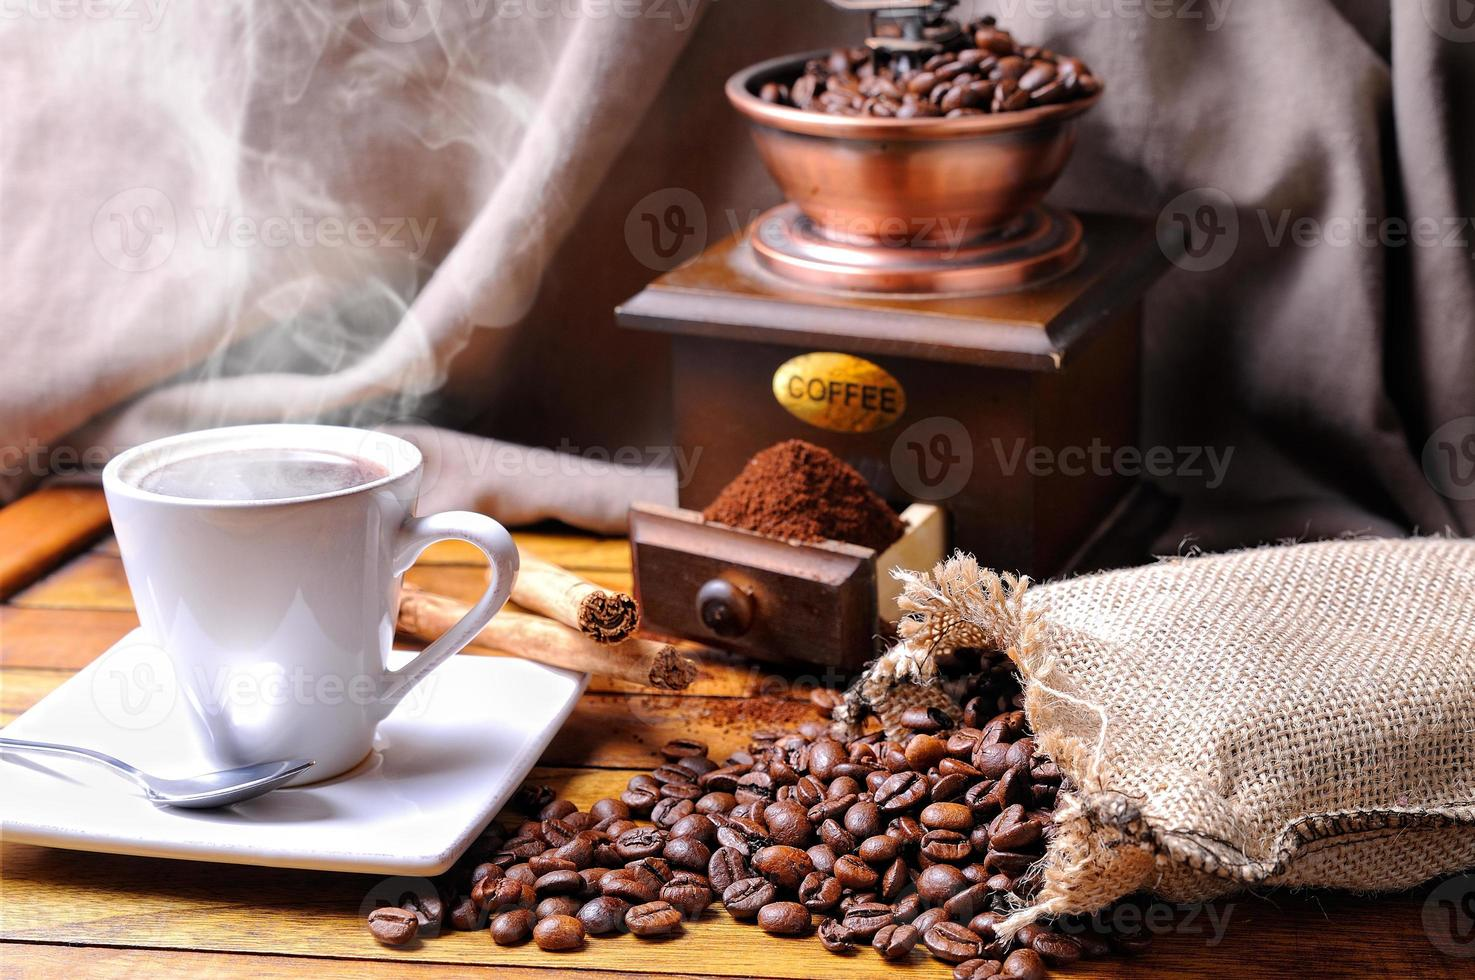 Composition with a cup of coffee, beans and coffee grinder photo